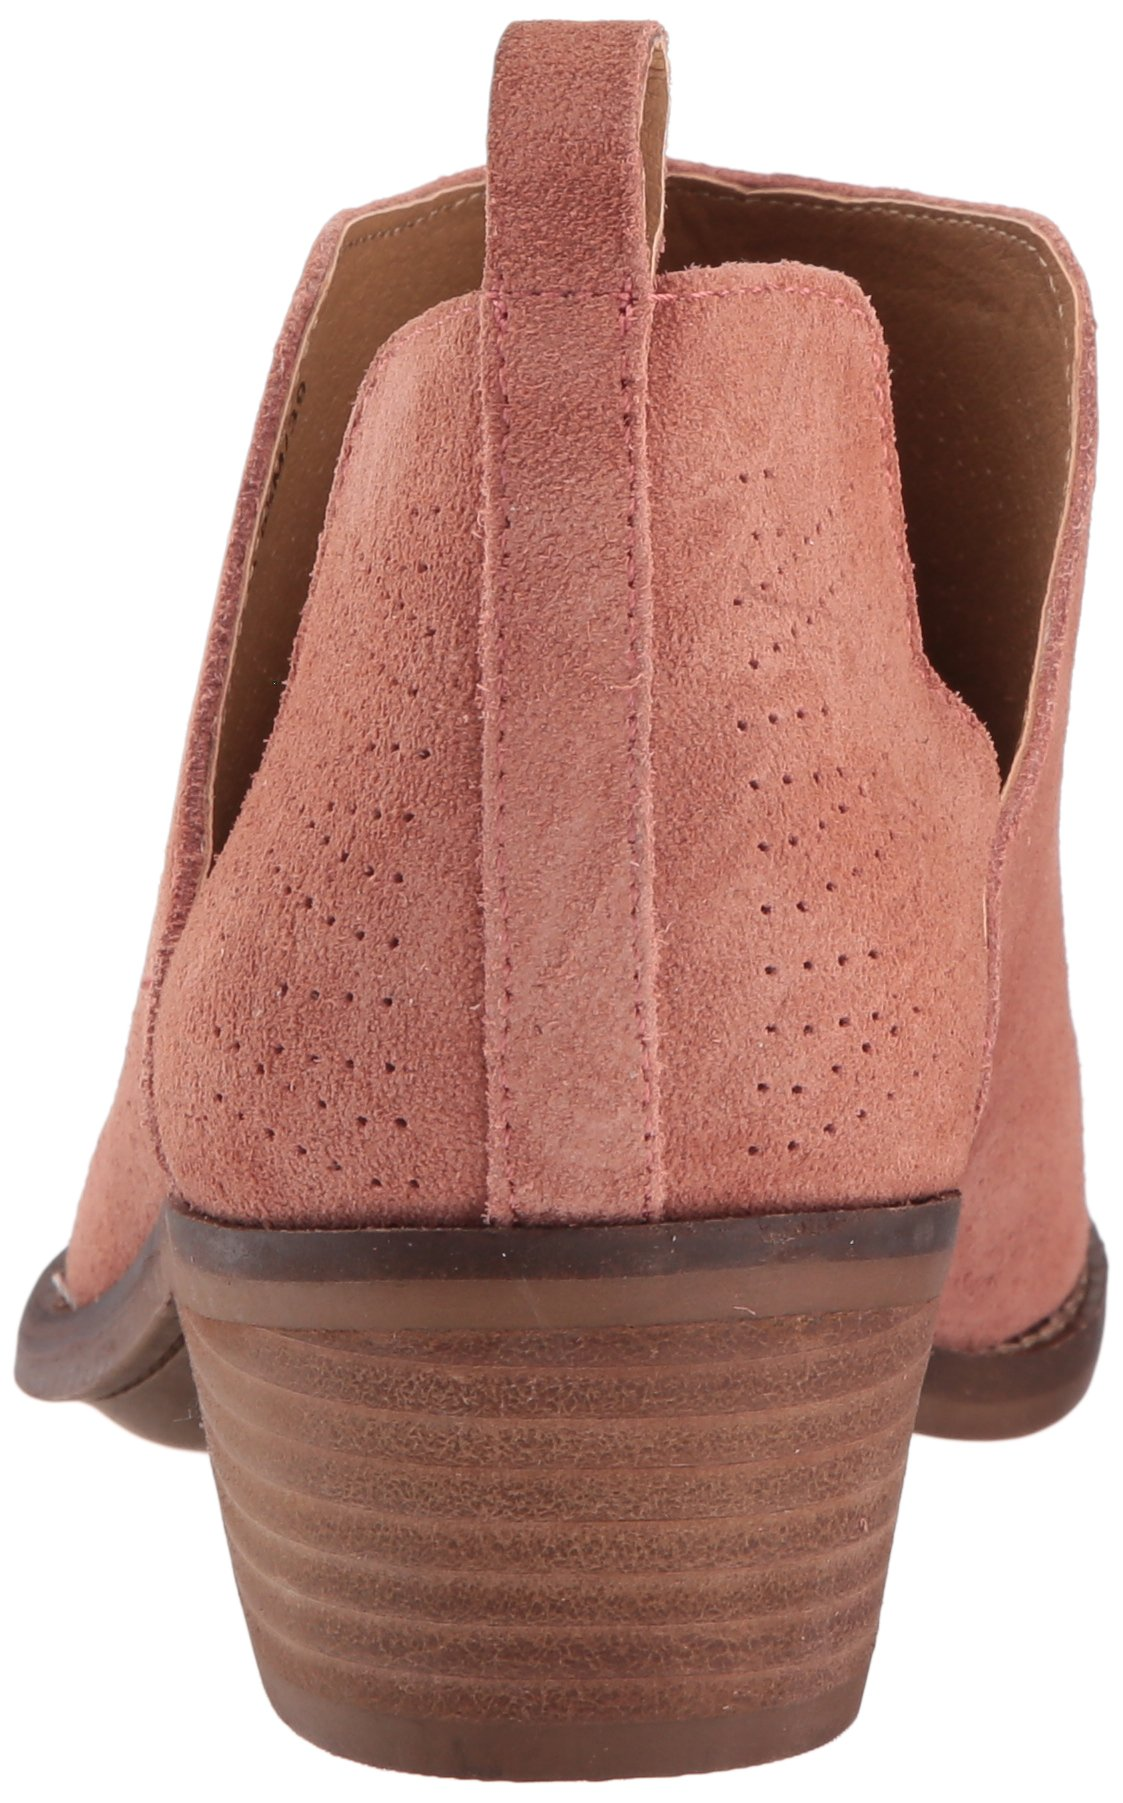 Lucky Brand Women's Fayth Ankle Boot, Canyon Rose, 8 M US by Lucky Brand (Image #2)